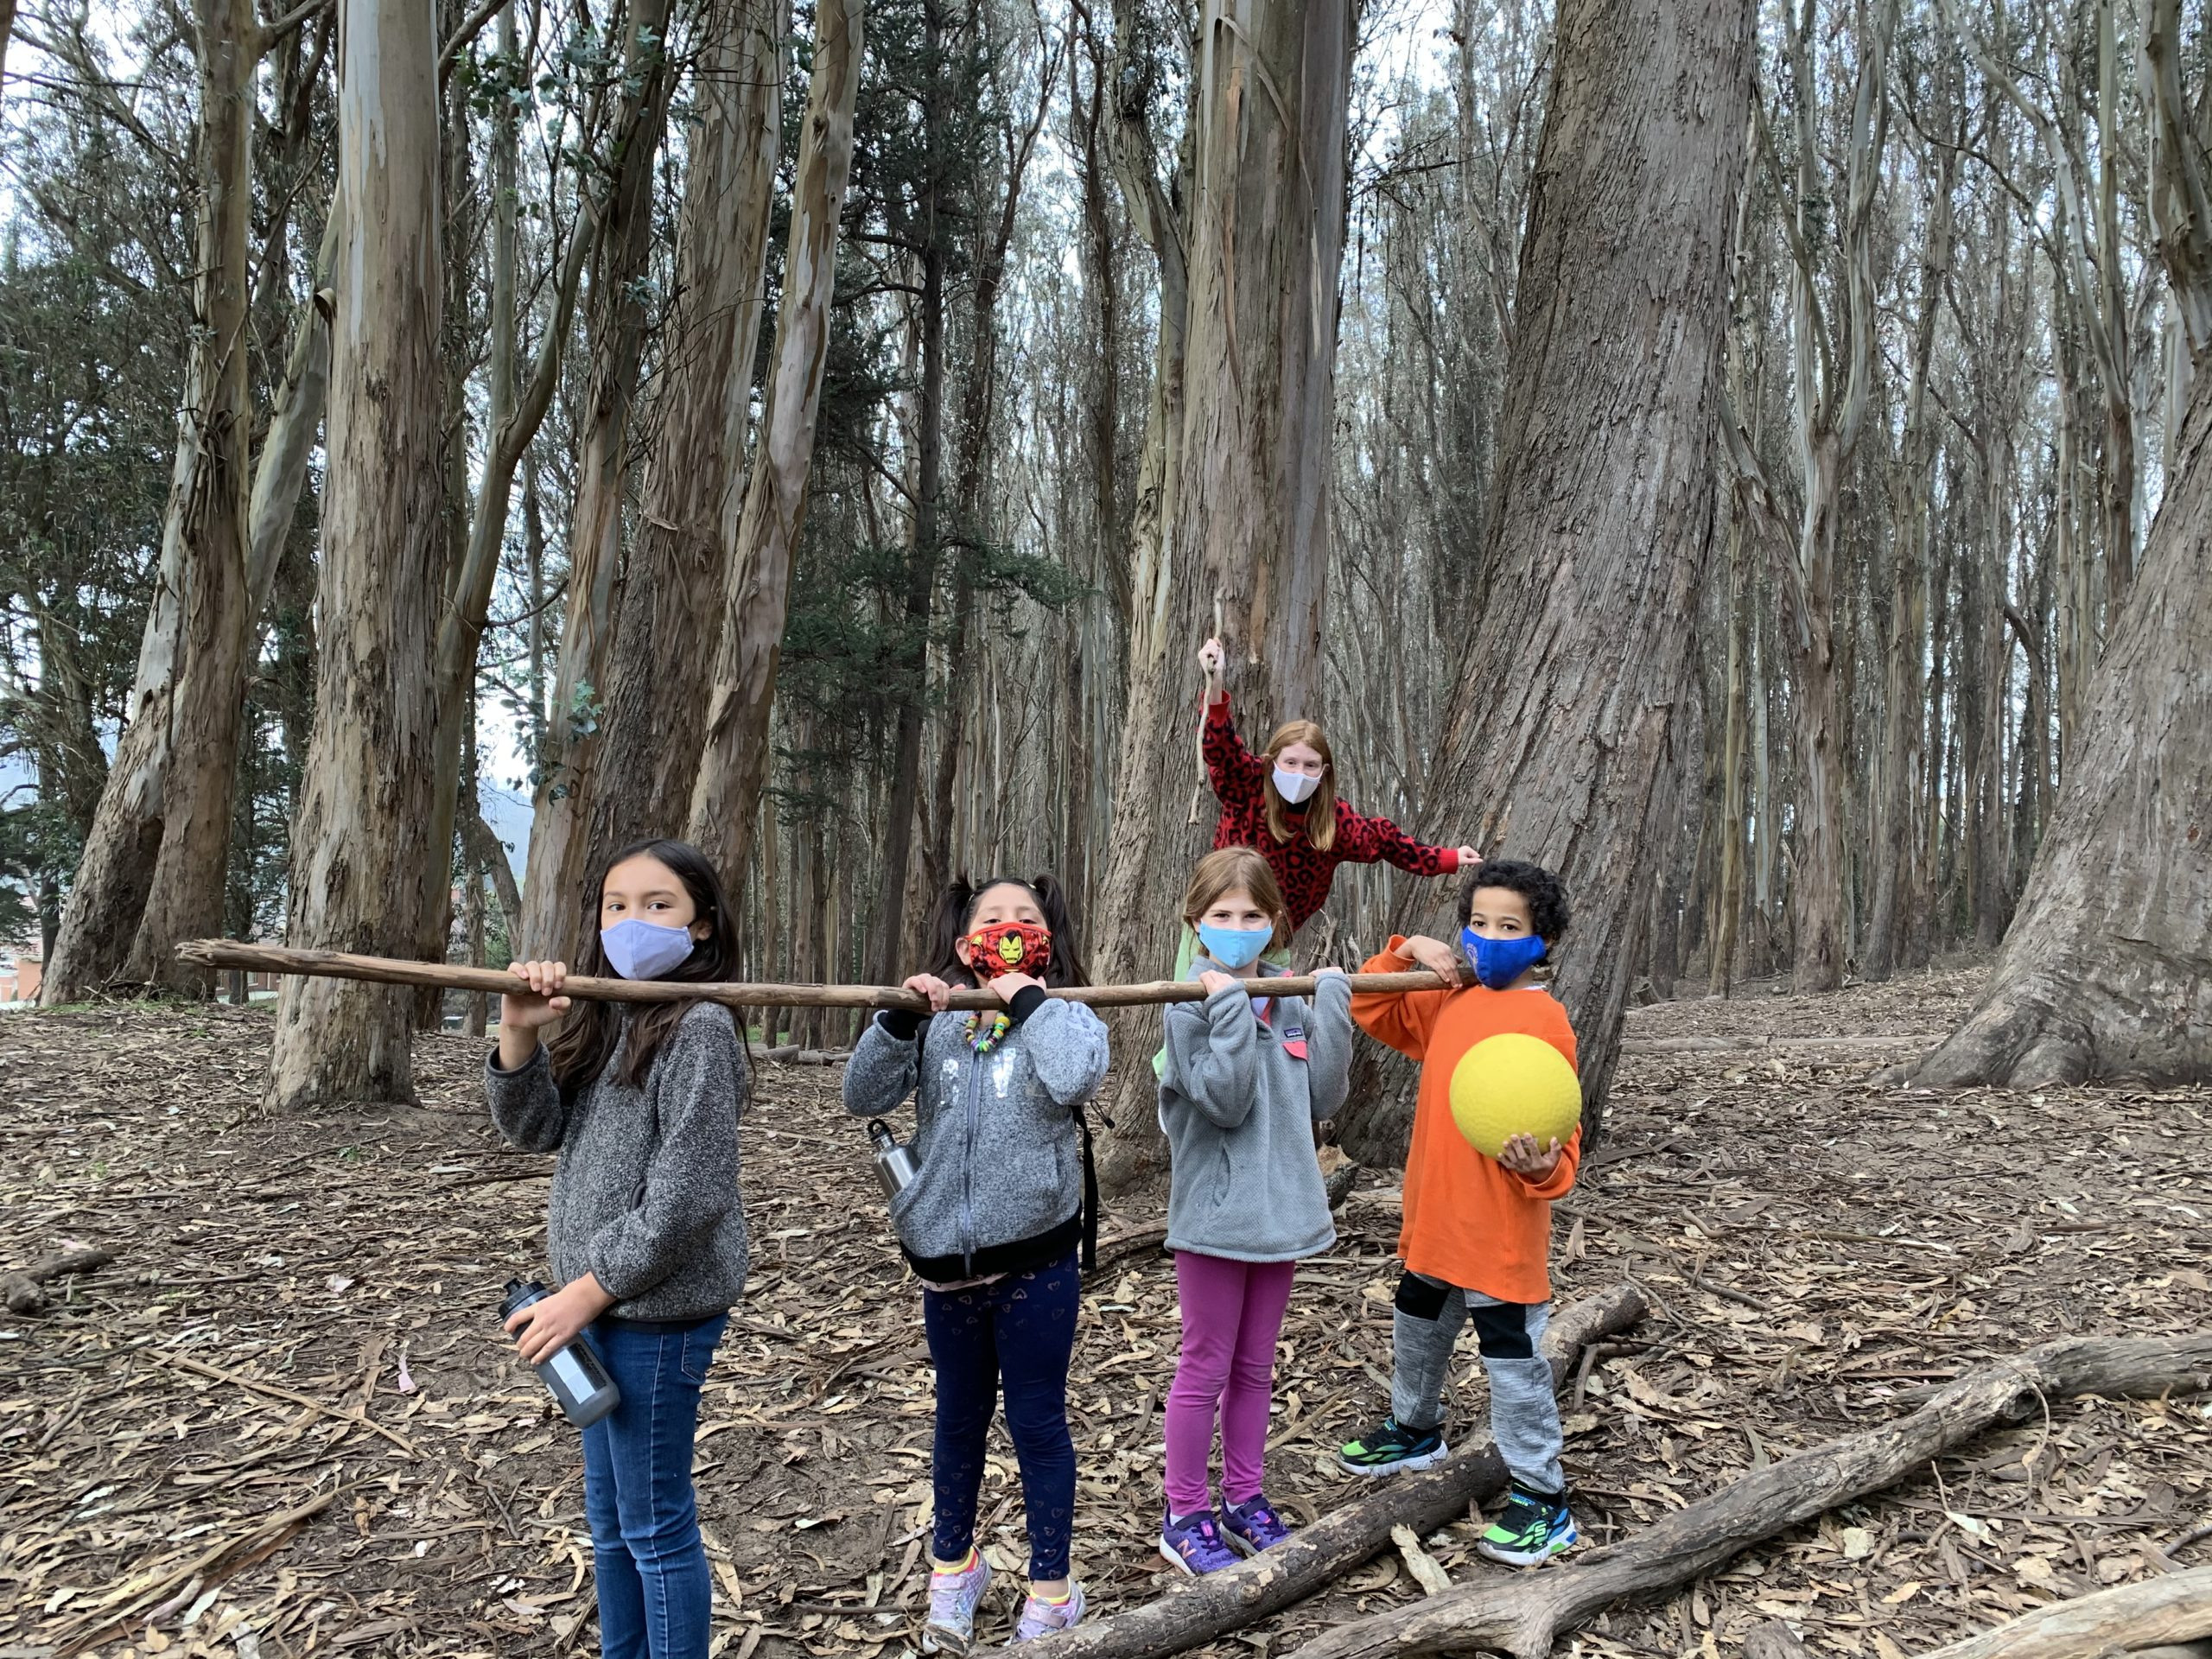 Children in the woods holding a stick